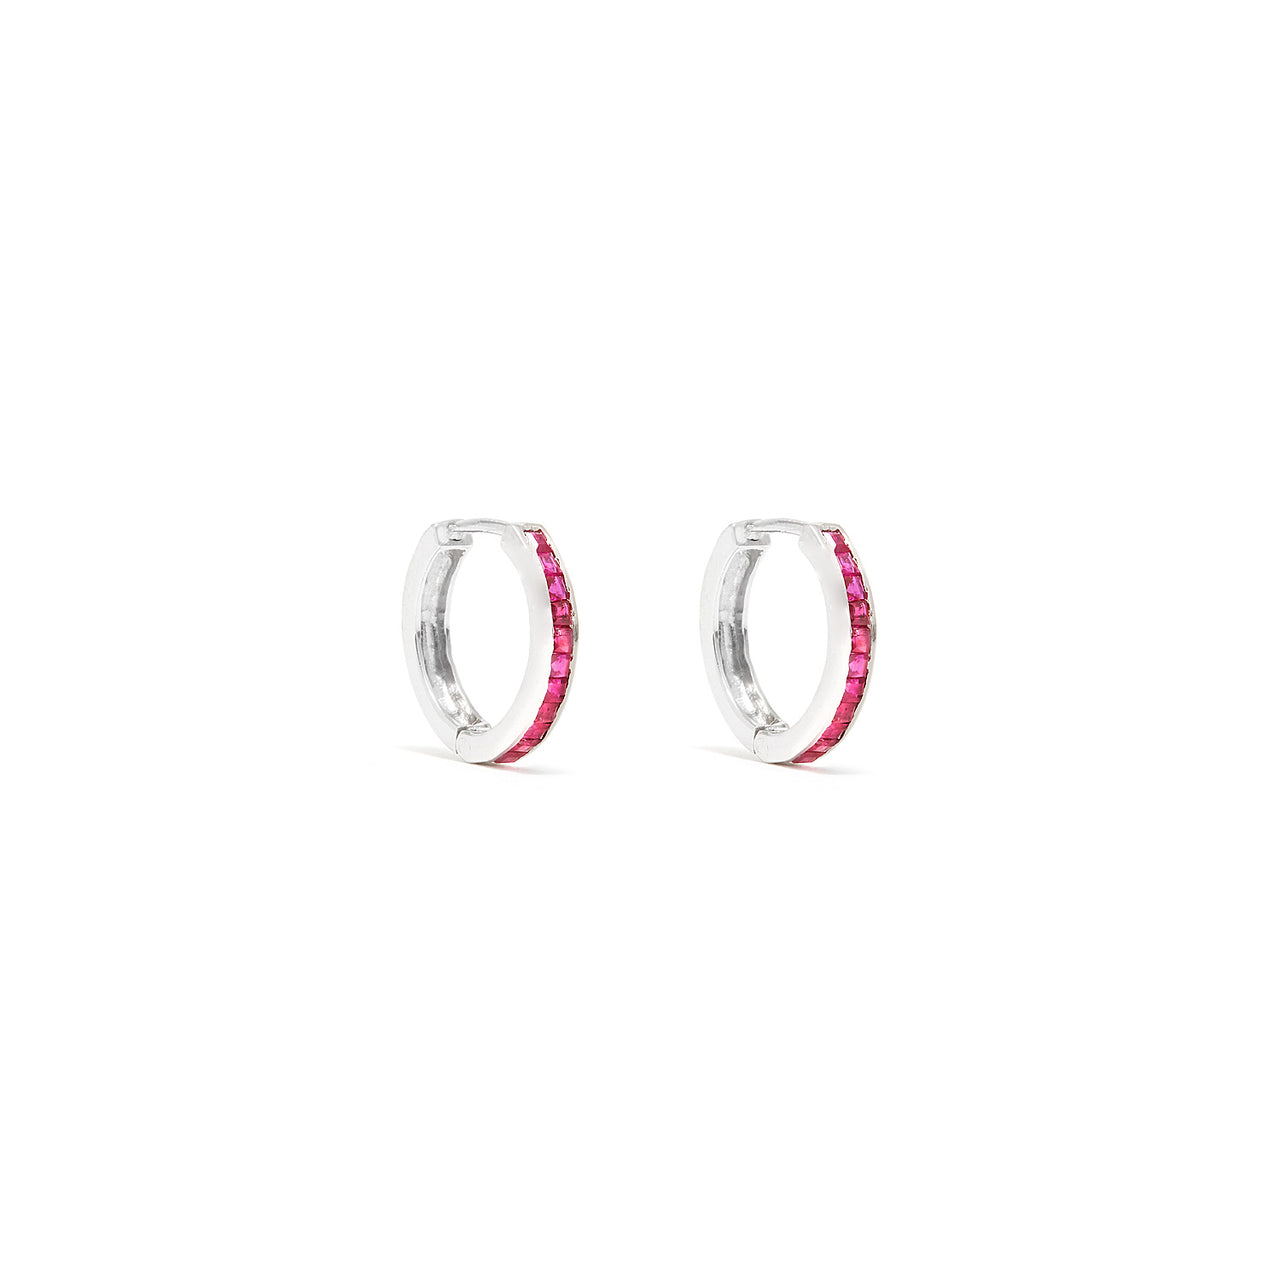 Ruby Baguette Hoop Earrings-Earrings-Jaipur Atelier